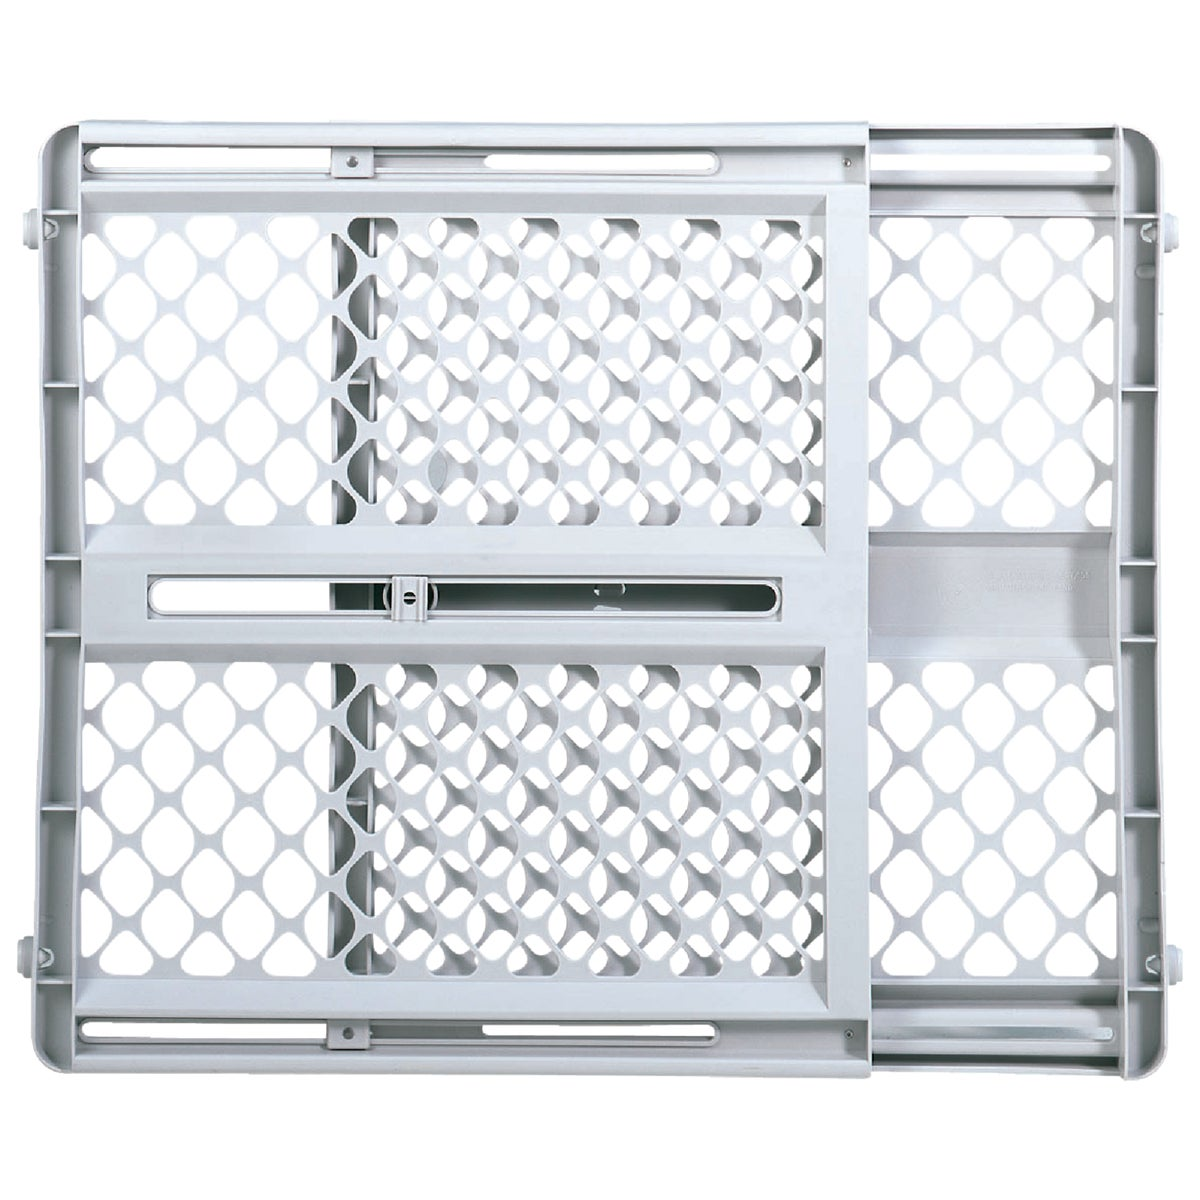 STANDARD PET GATE - 8625 by North State Ind